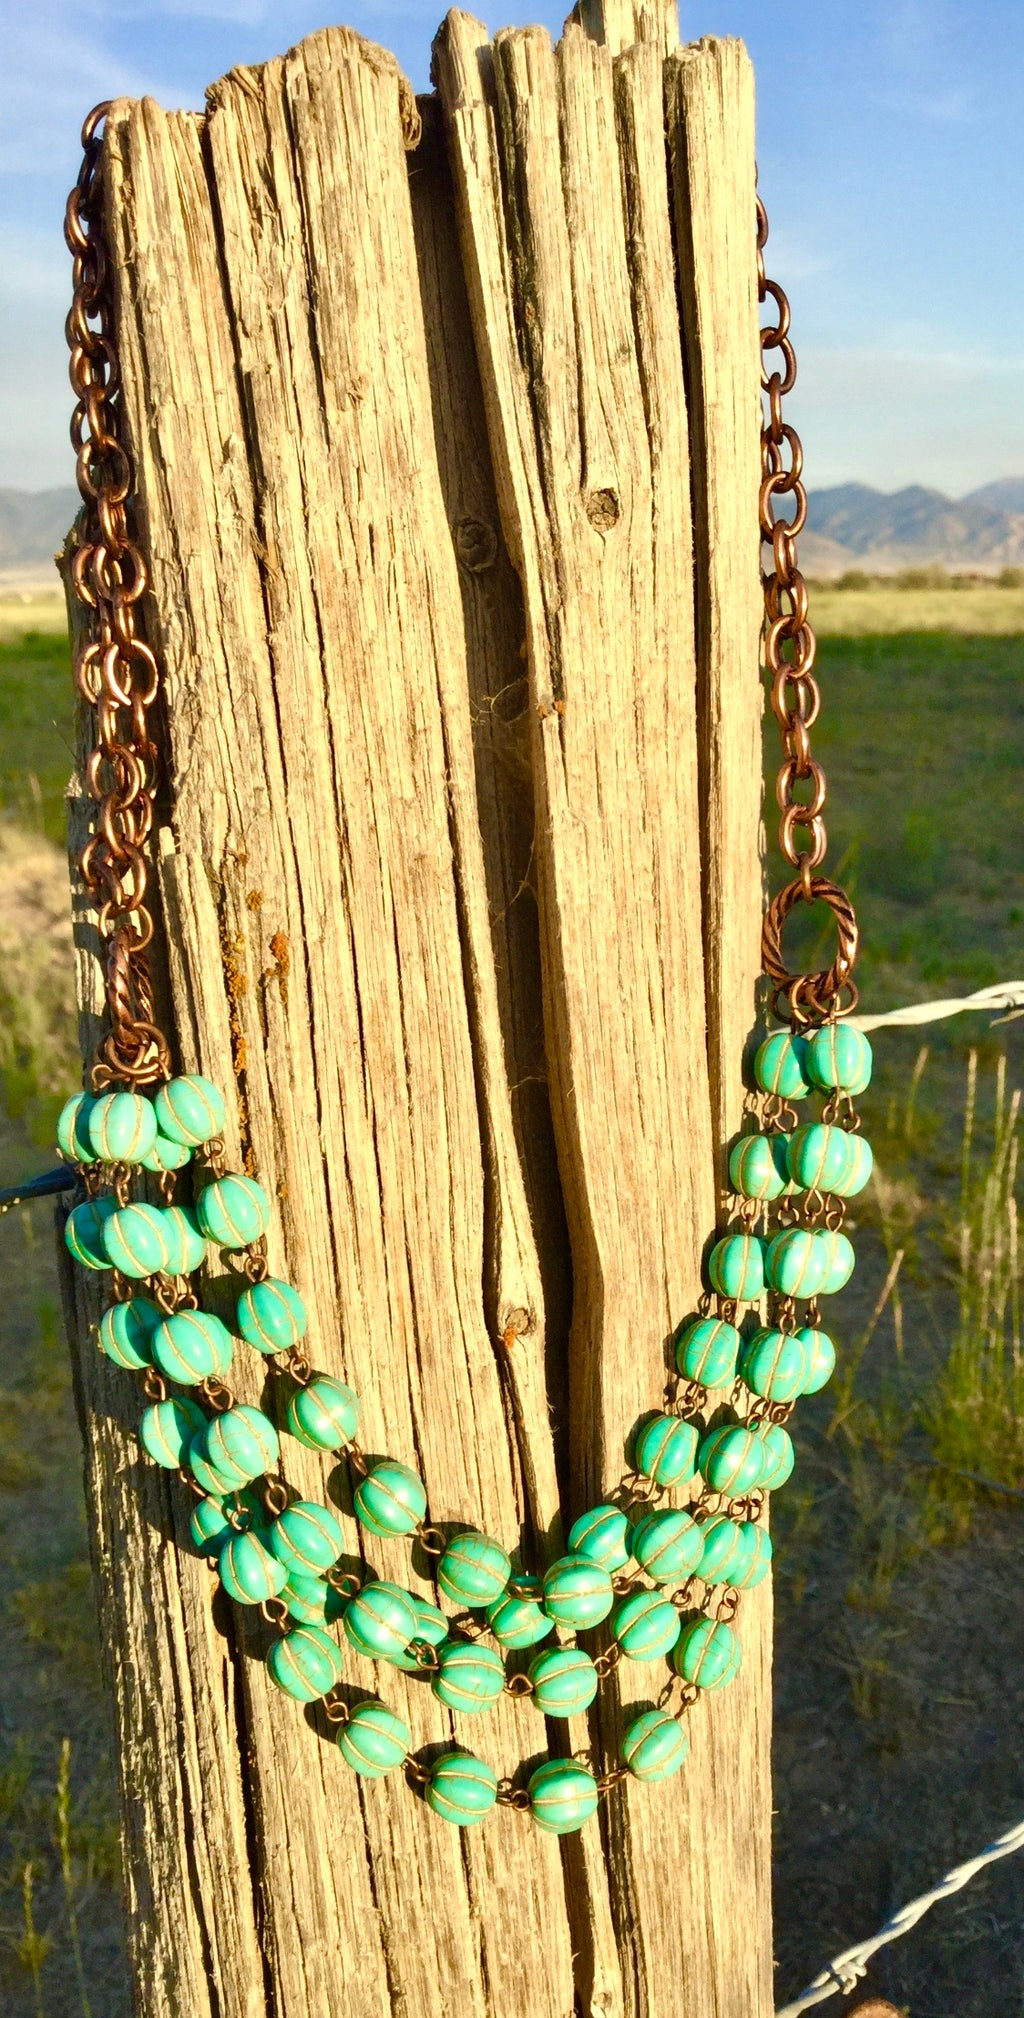 The ConTera Copper and Pumpkin Turquoise Necklace